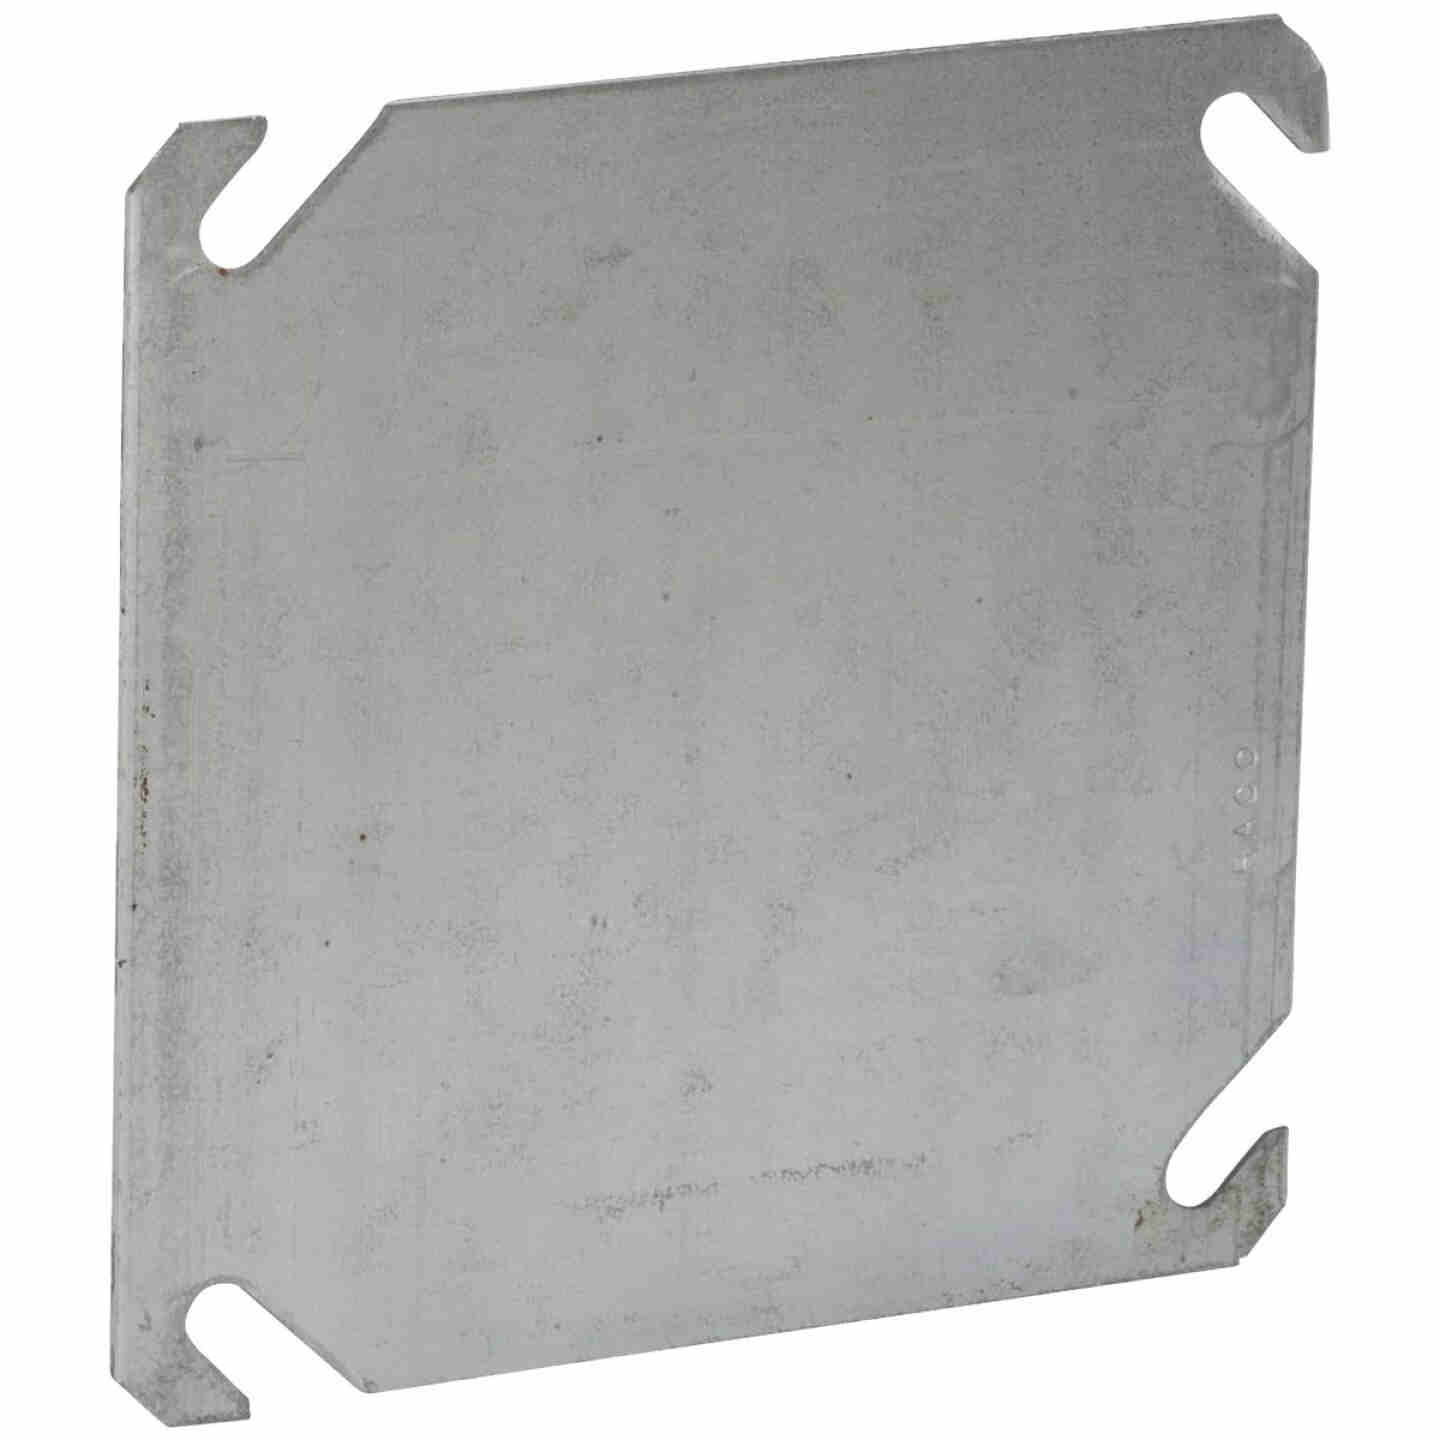 Raco Blank 4 In. x 4 In. Square Blank Cover Image 1